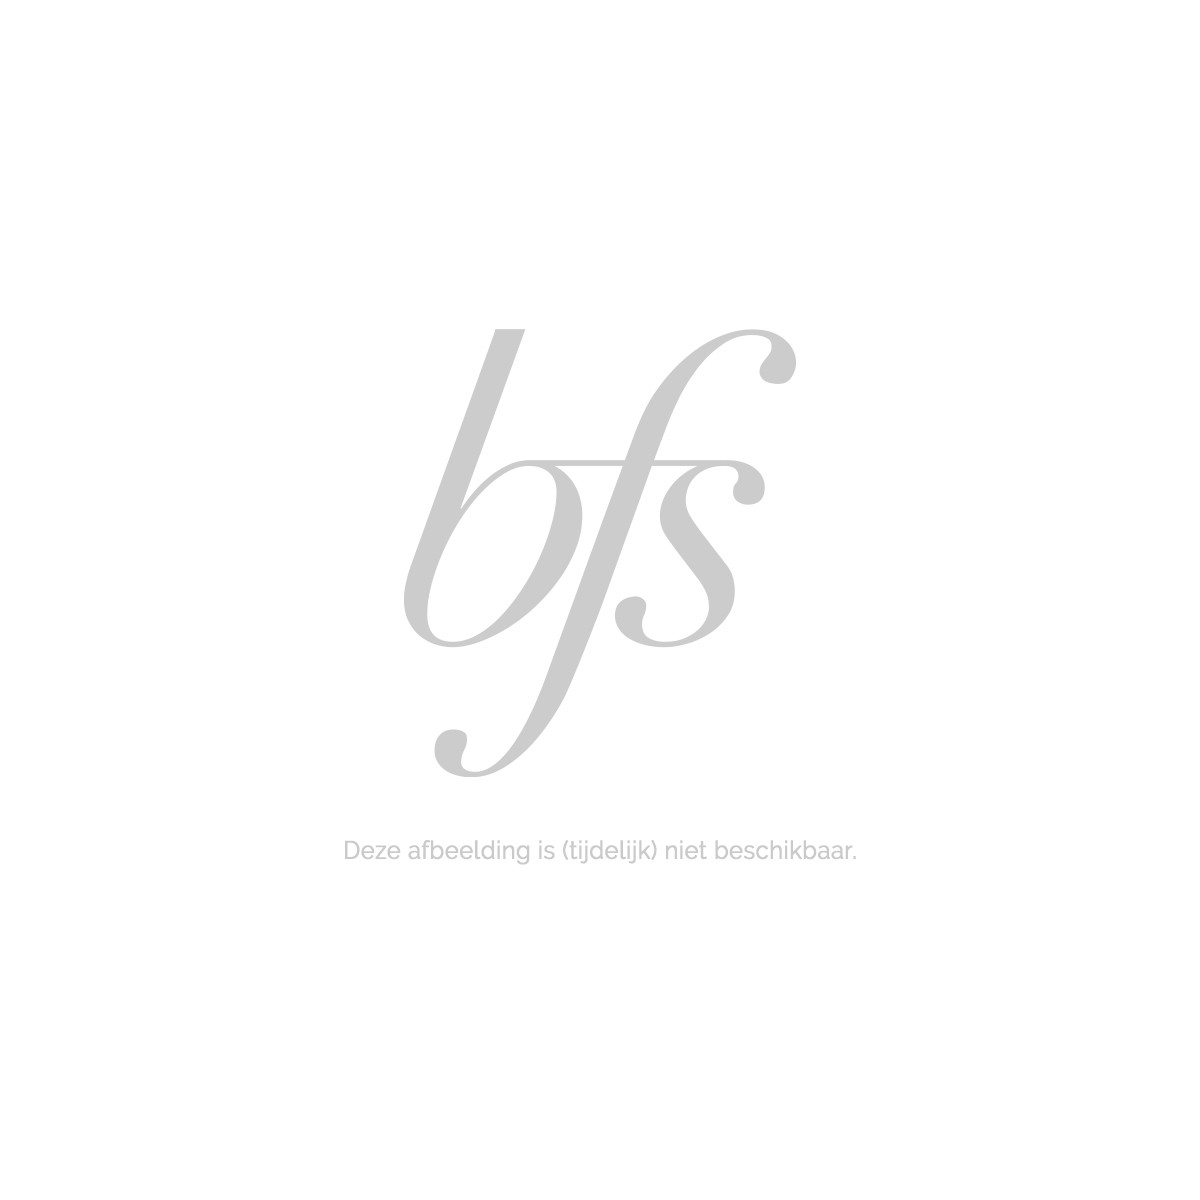 Afbeelding van Algologie Anti Pollution & Soothing Cream Crème Des Dunes Beauty